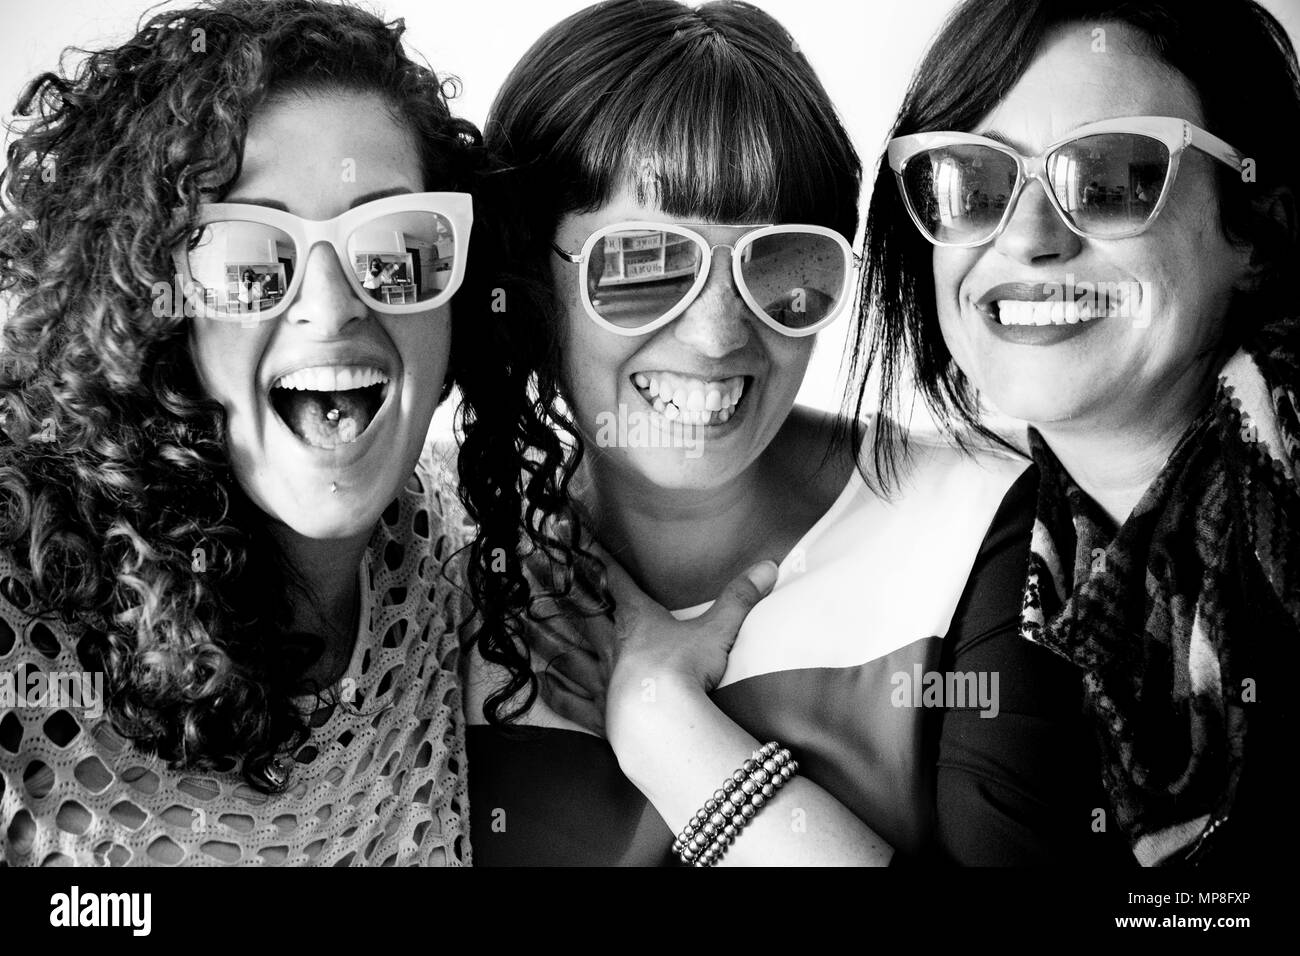 friendship for group of women people enjoy and laugh and smile together with sunglasses in craziness leisure time. funny smiles for nice beautiful lad - Stock Image